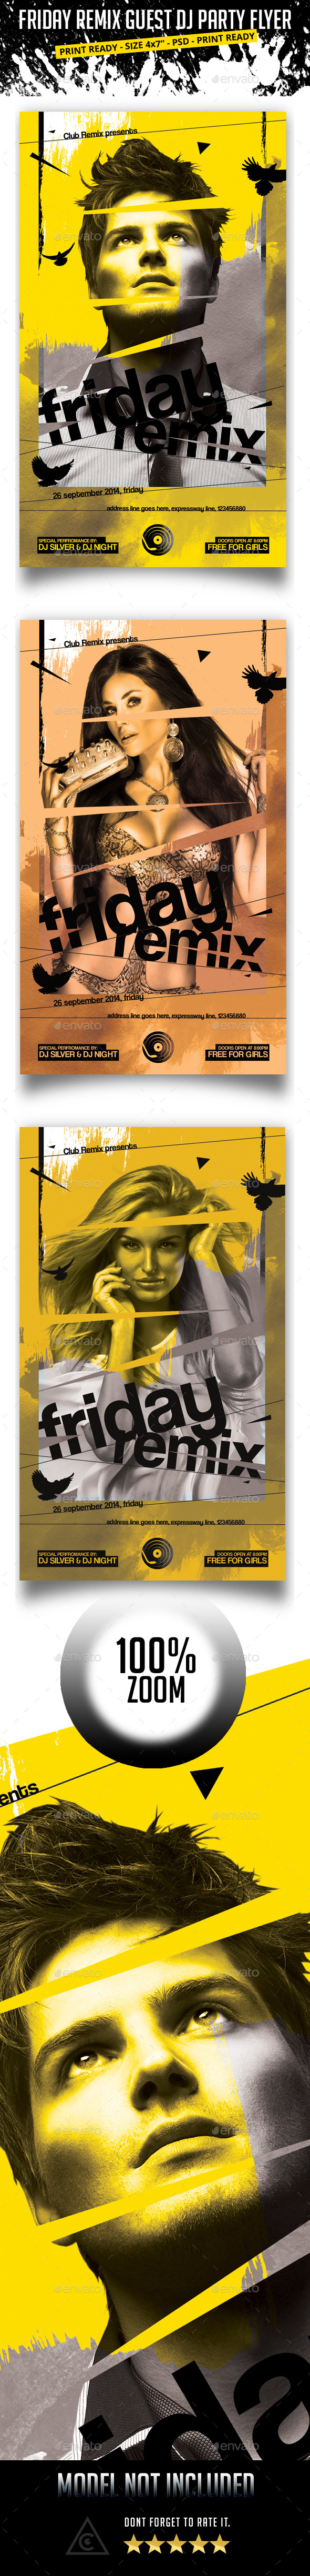 Friday Remix Guest Dj Party Flyer - Clubs & Parties Events